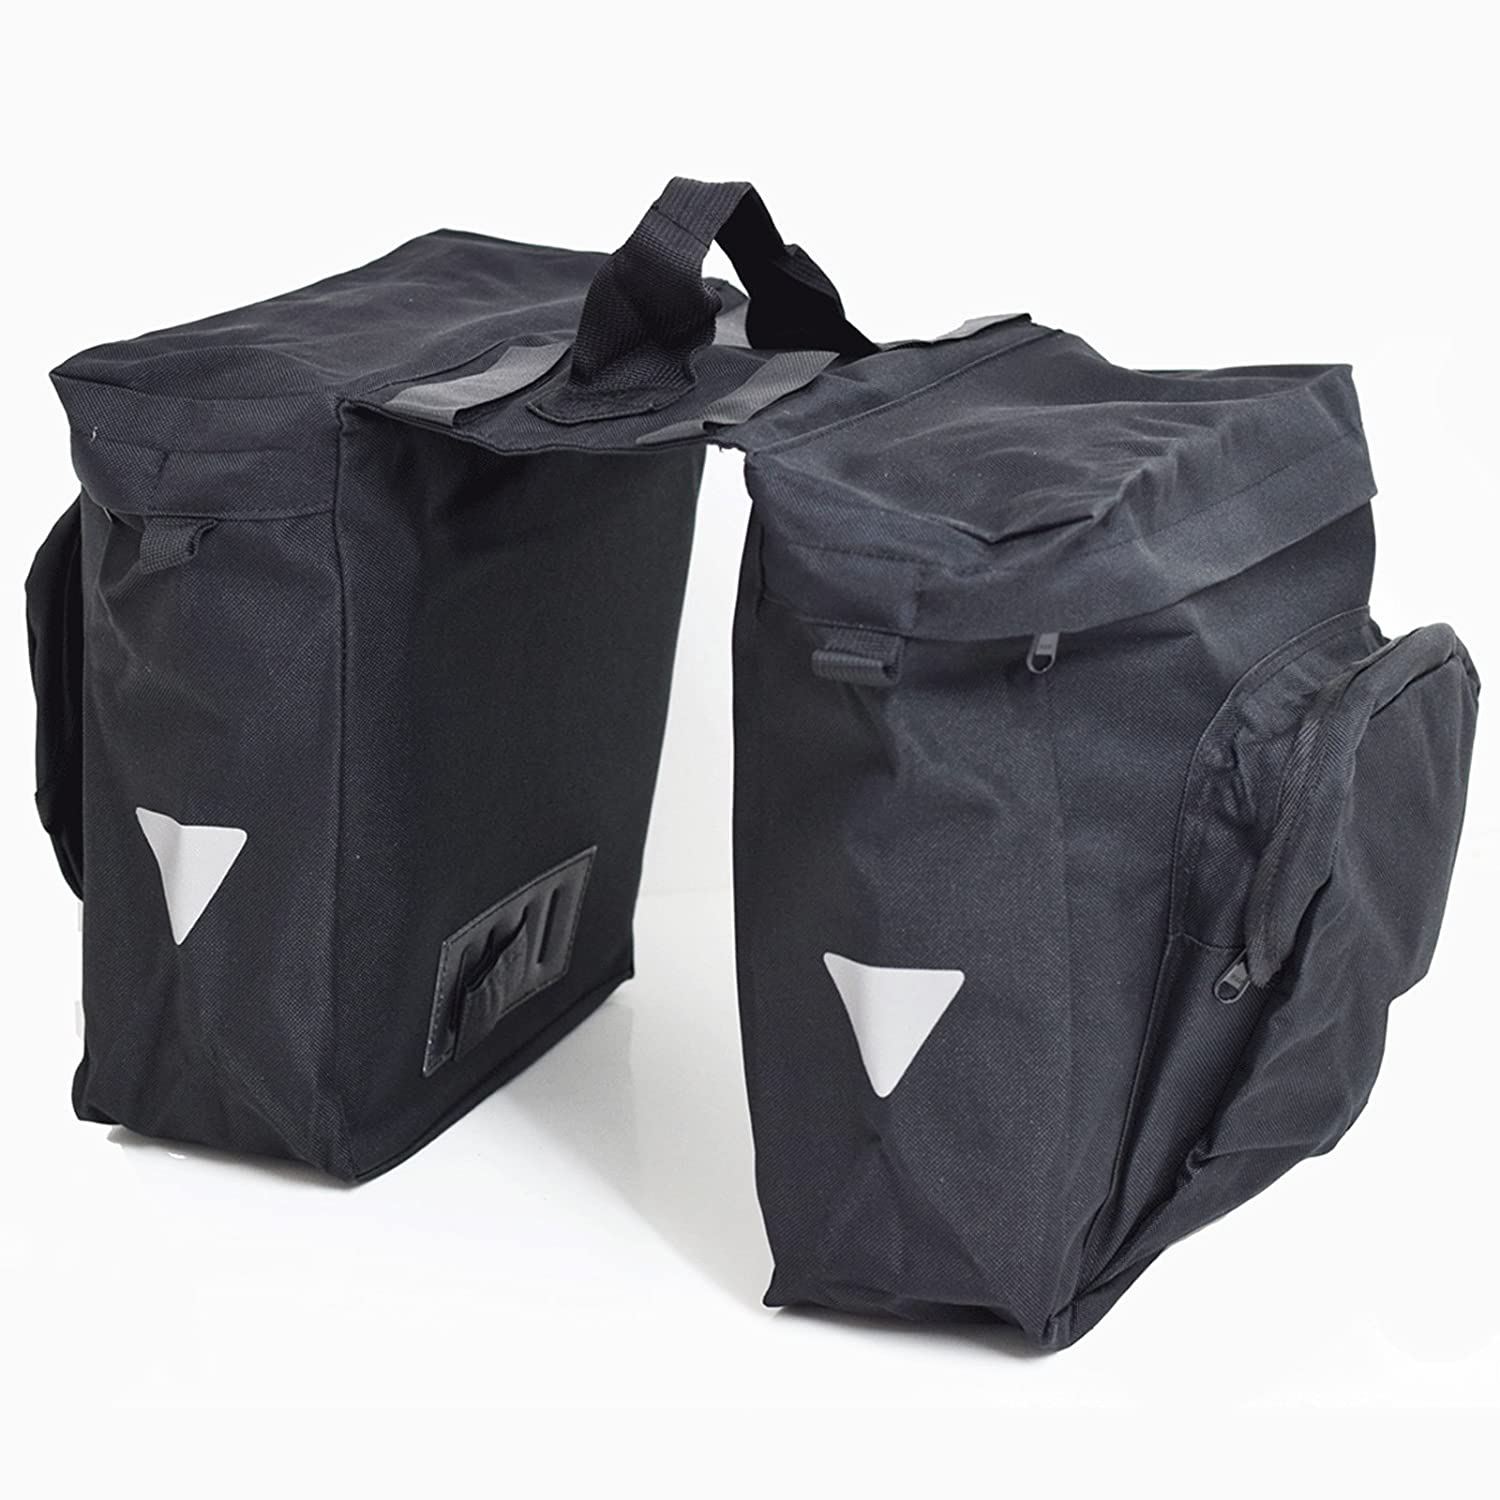 ETC 600D DOUBLE BICYCLE PANNIER WITH CARRY HANDLE